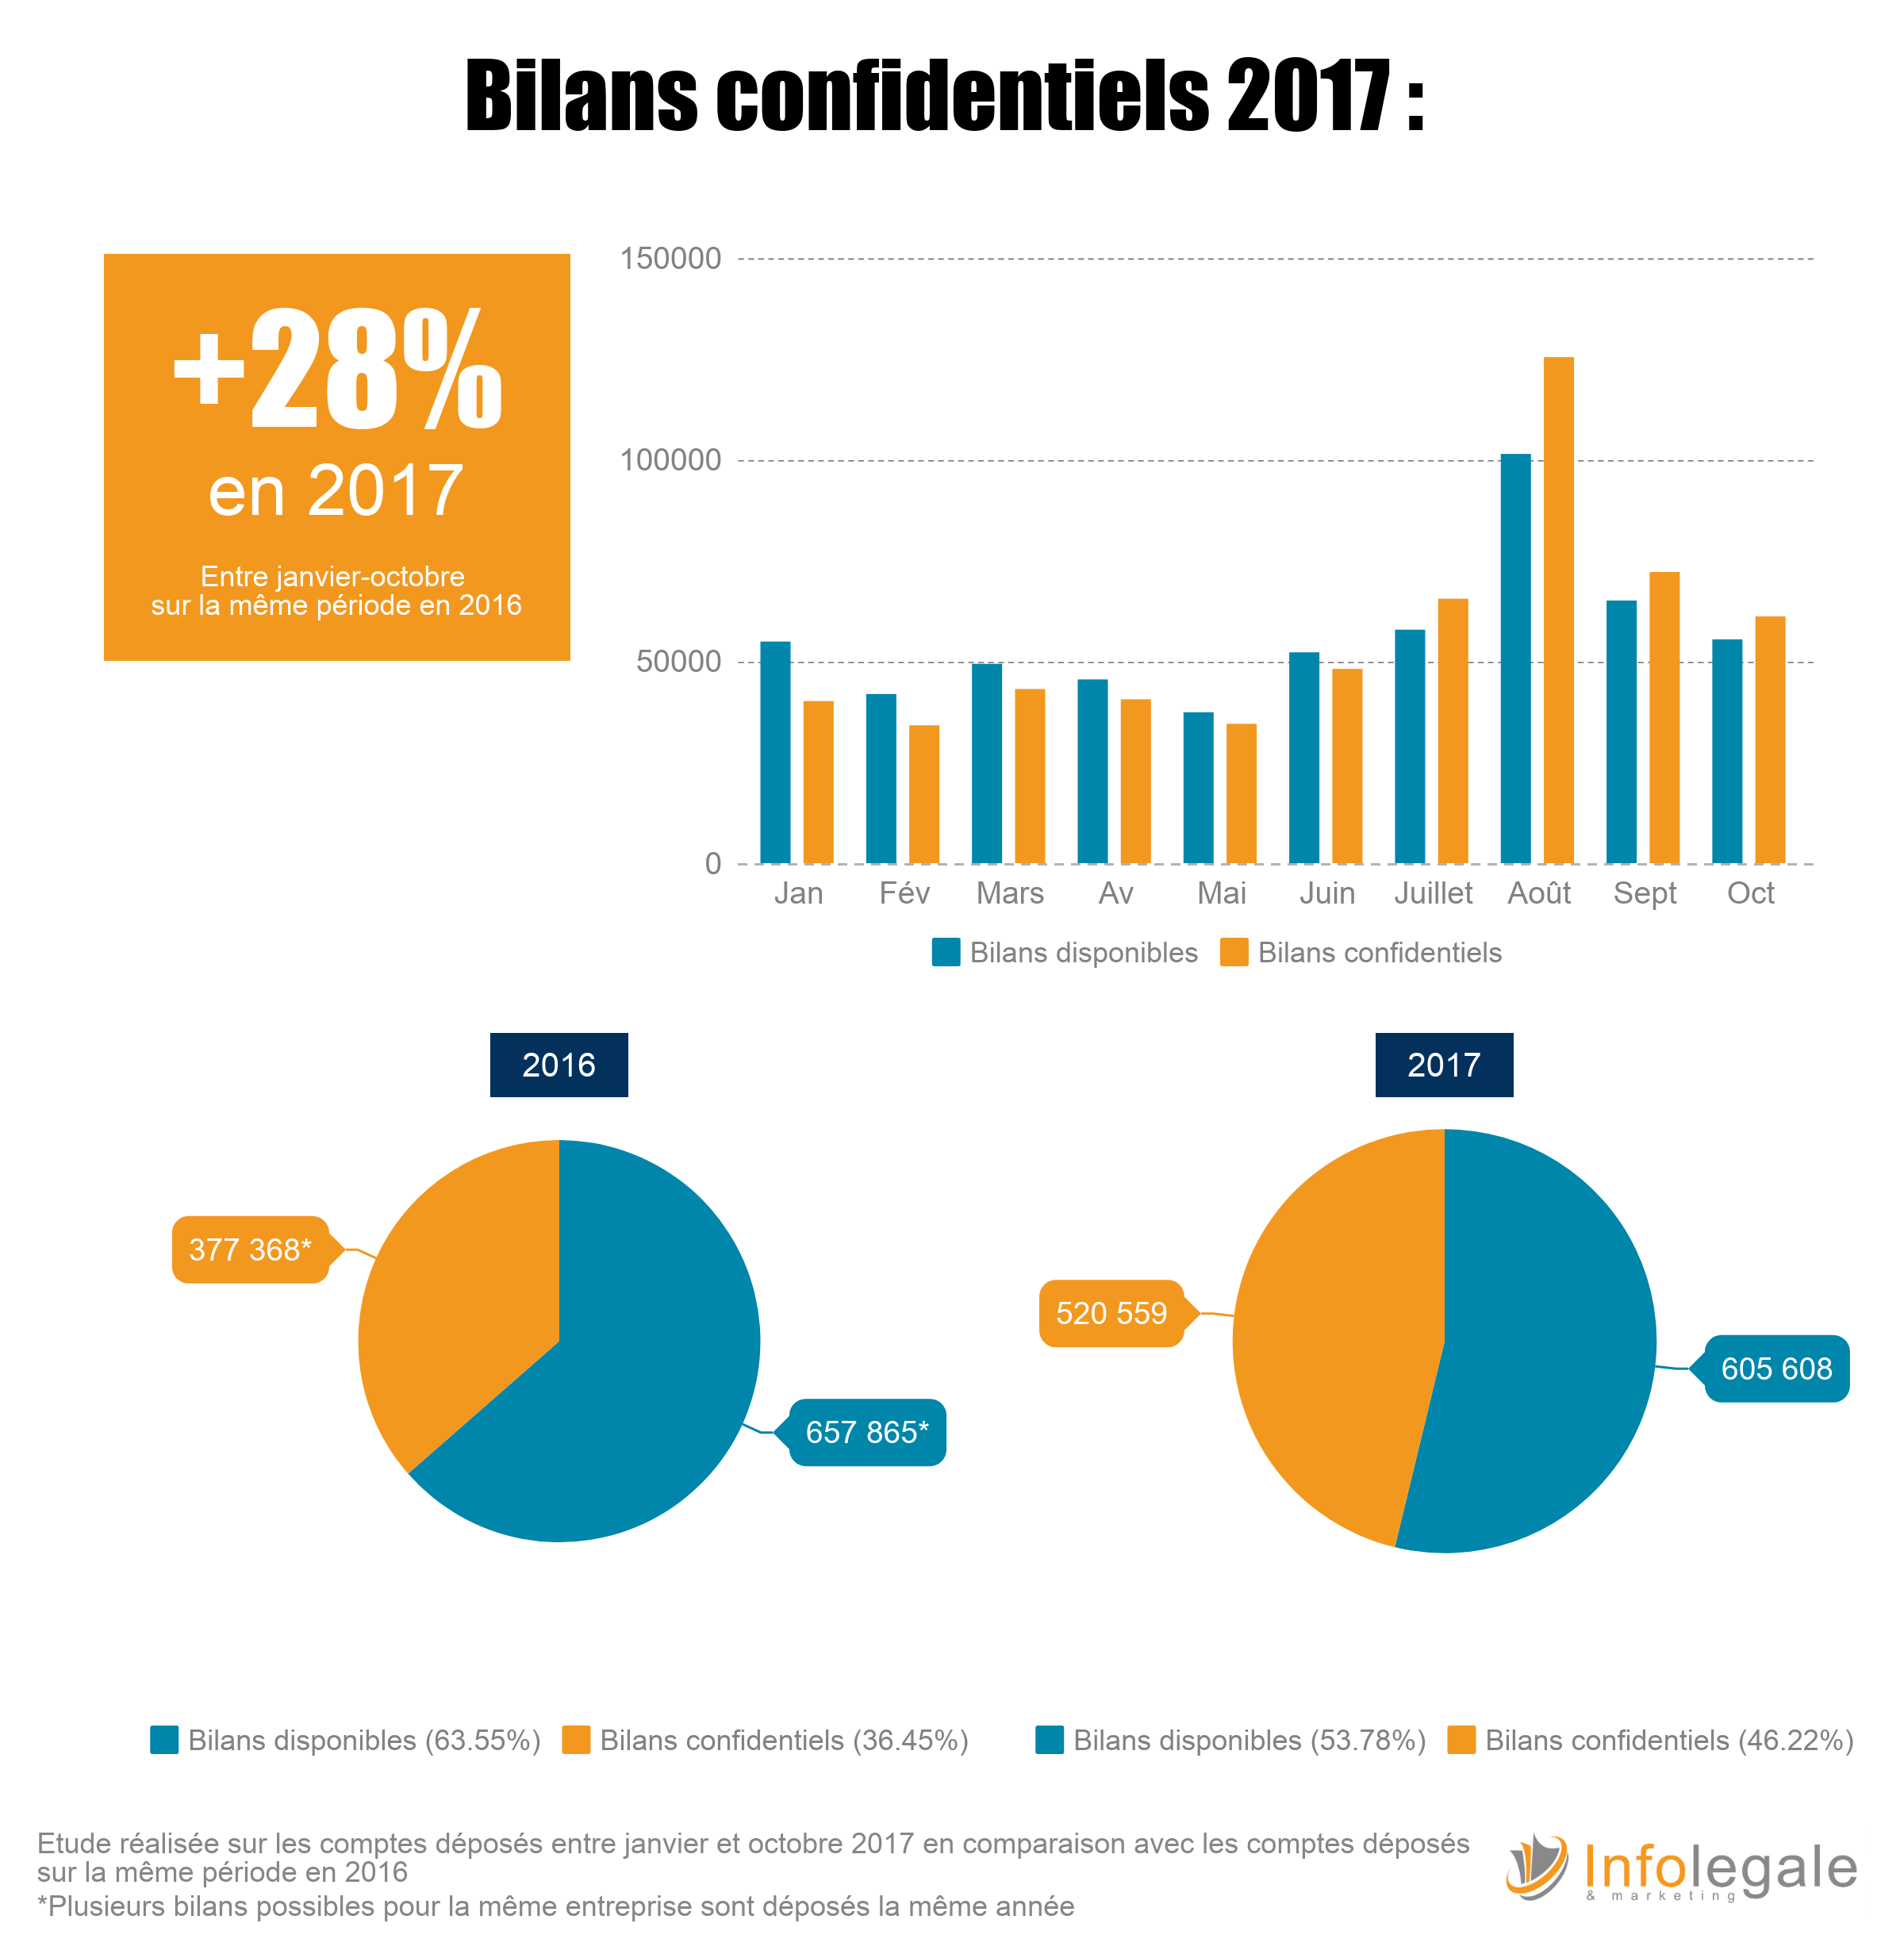 Bilans confidentiels 2017